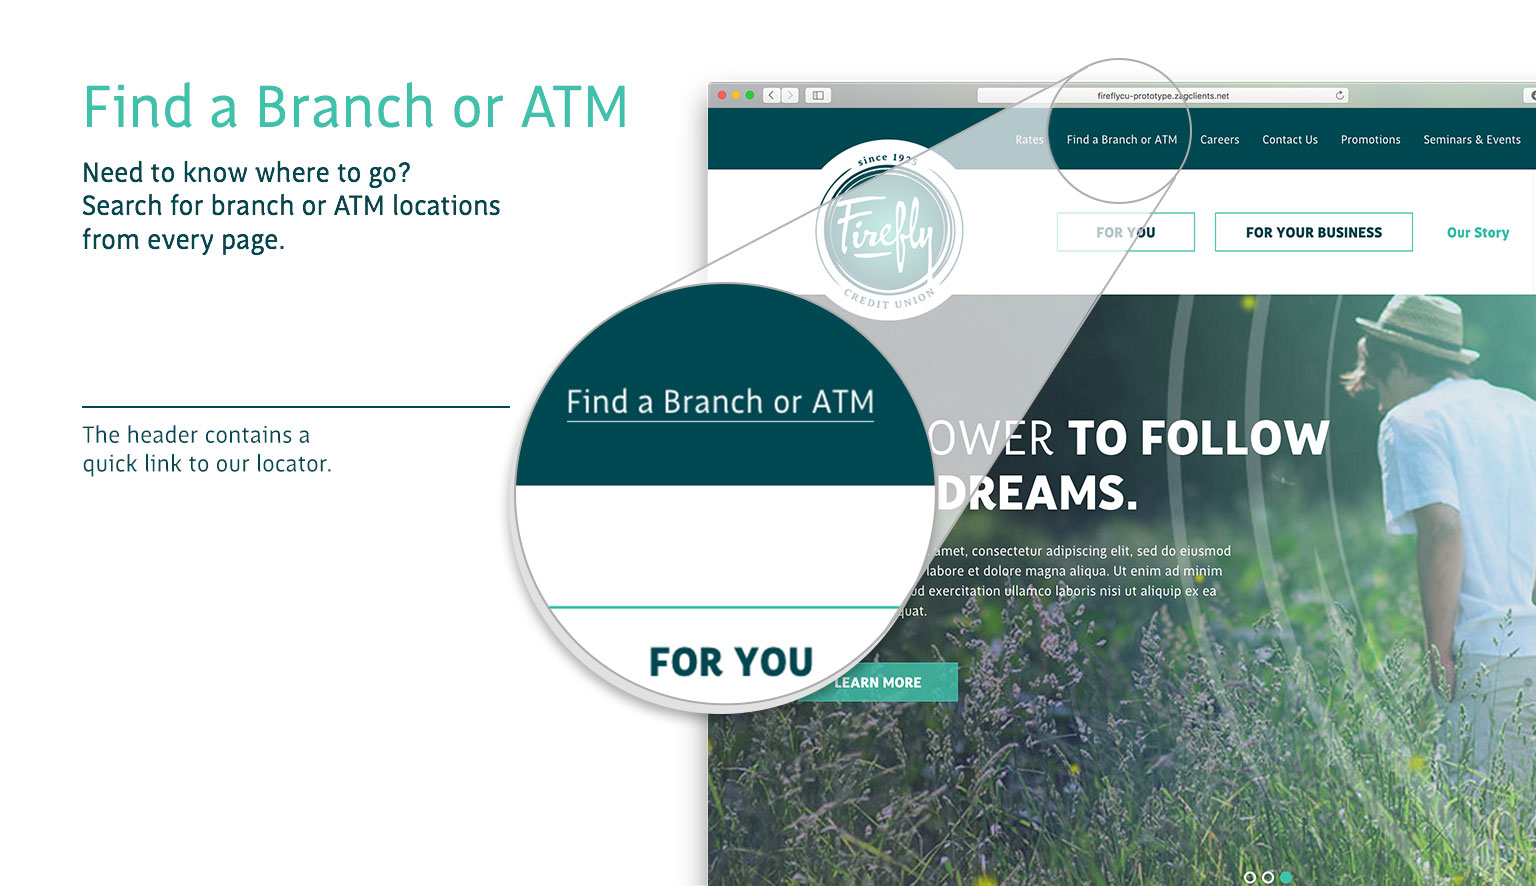 Find a branch or ATM. Need to know where to go? Search for branch or ATM locations from every page. The header contains a quick link to our locator.